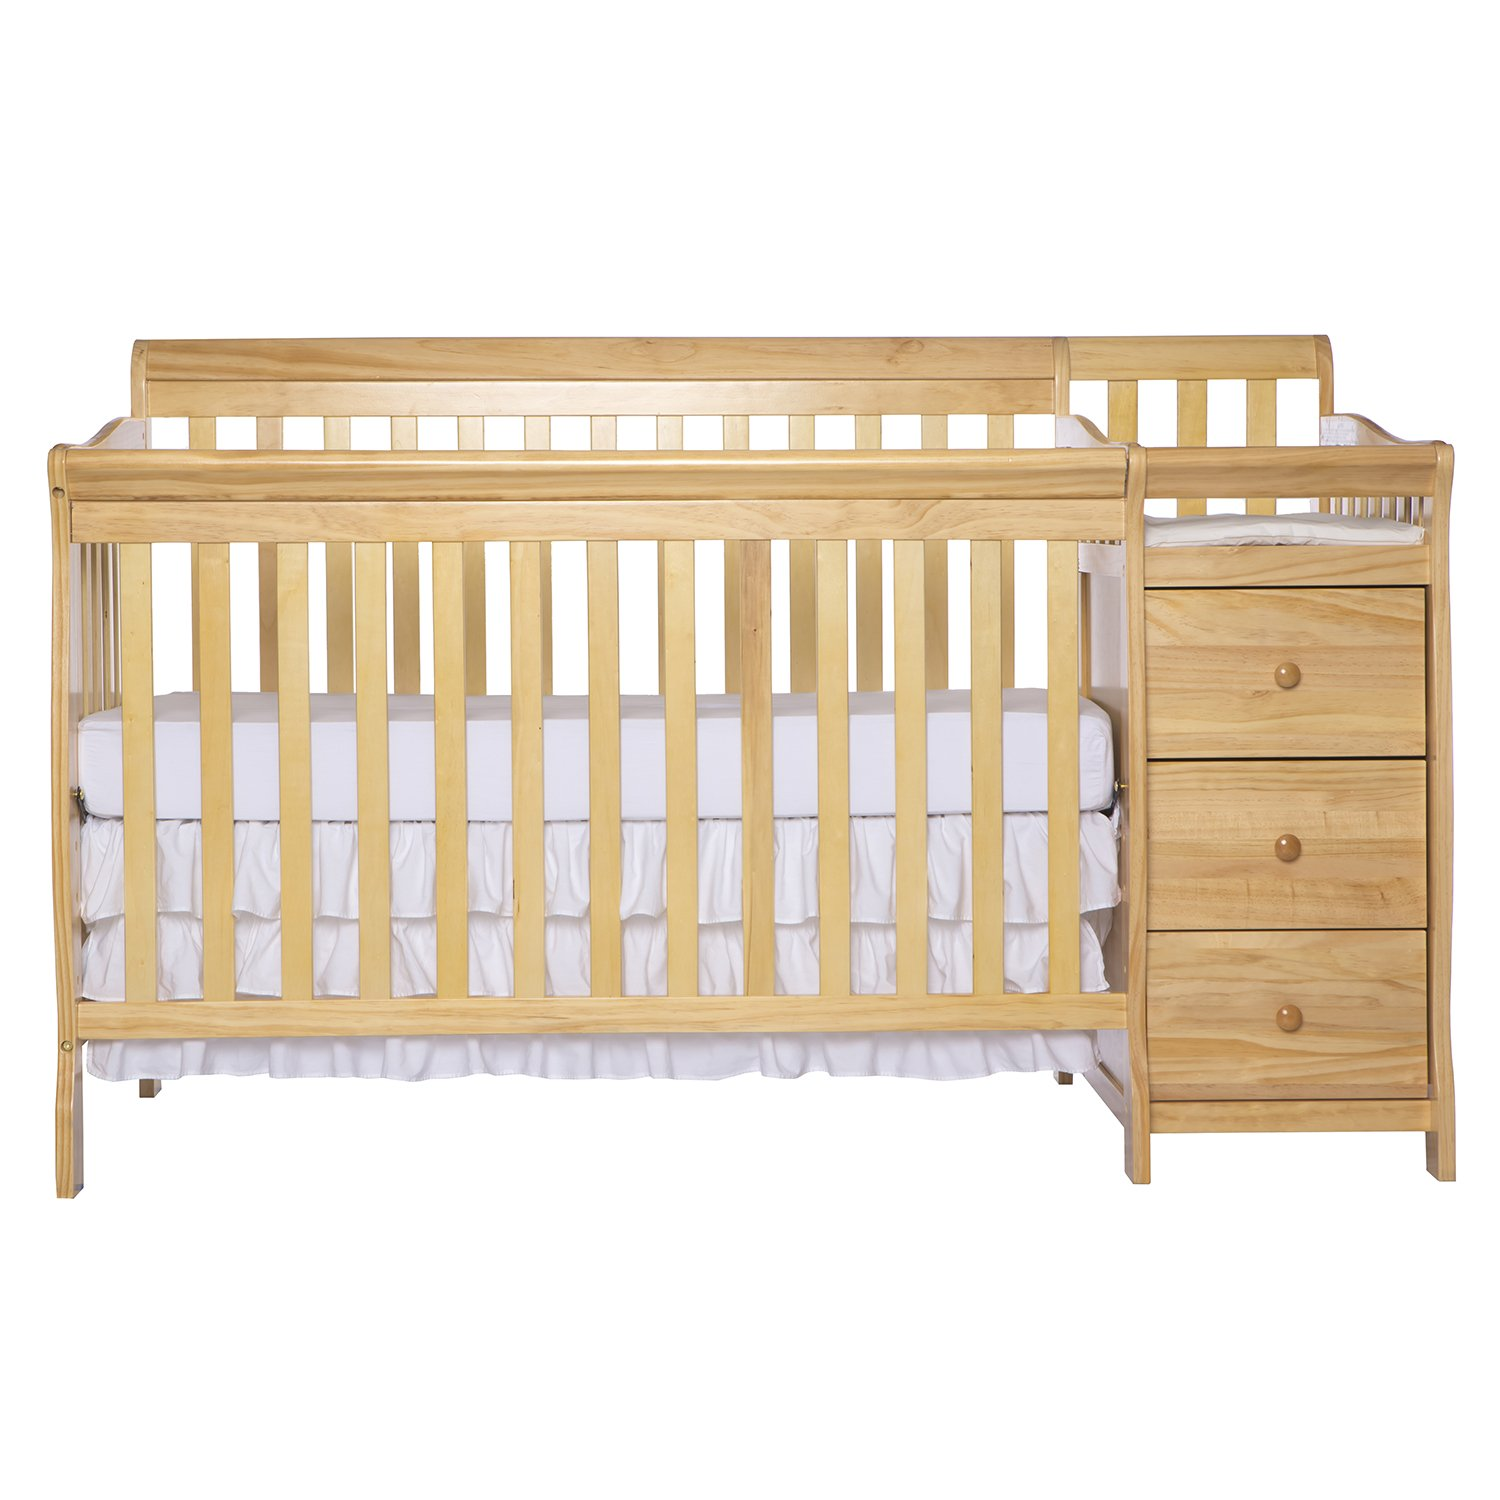 Dream On Me 5 in 1 Brody Convertible Crib with Changer, Natural by Dream On Me (Image #1)